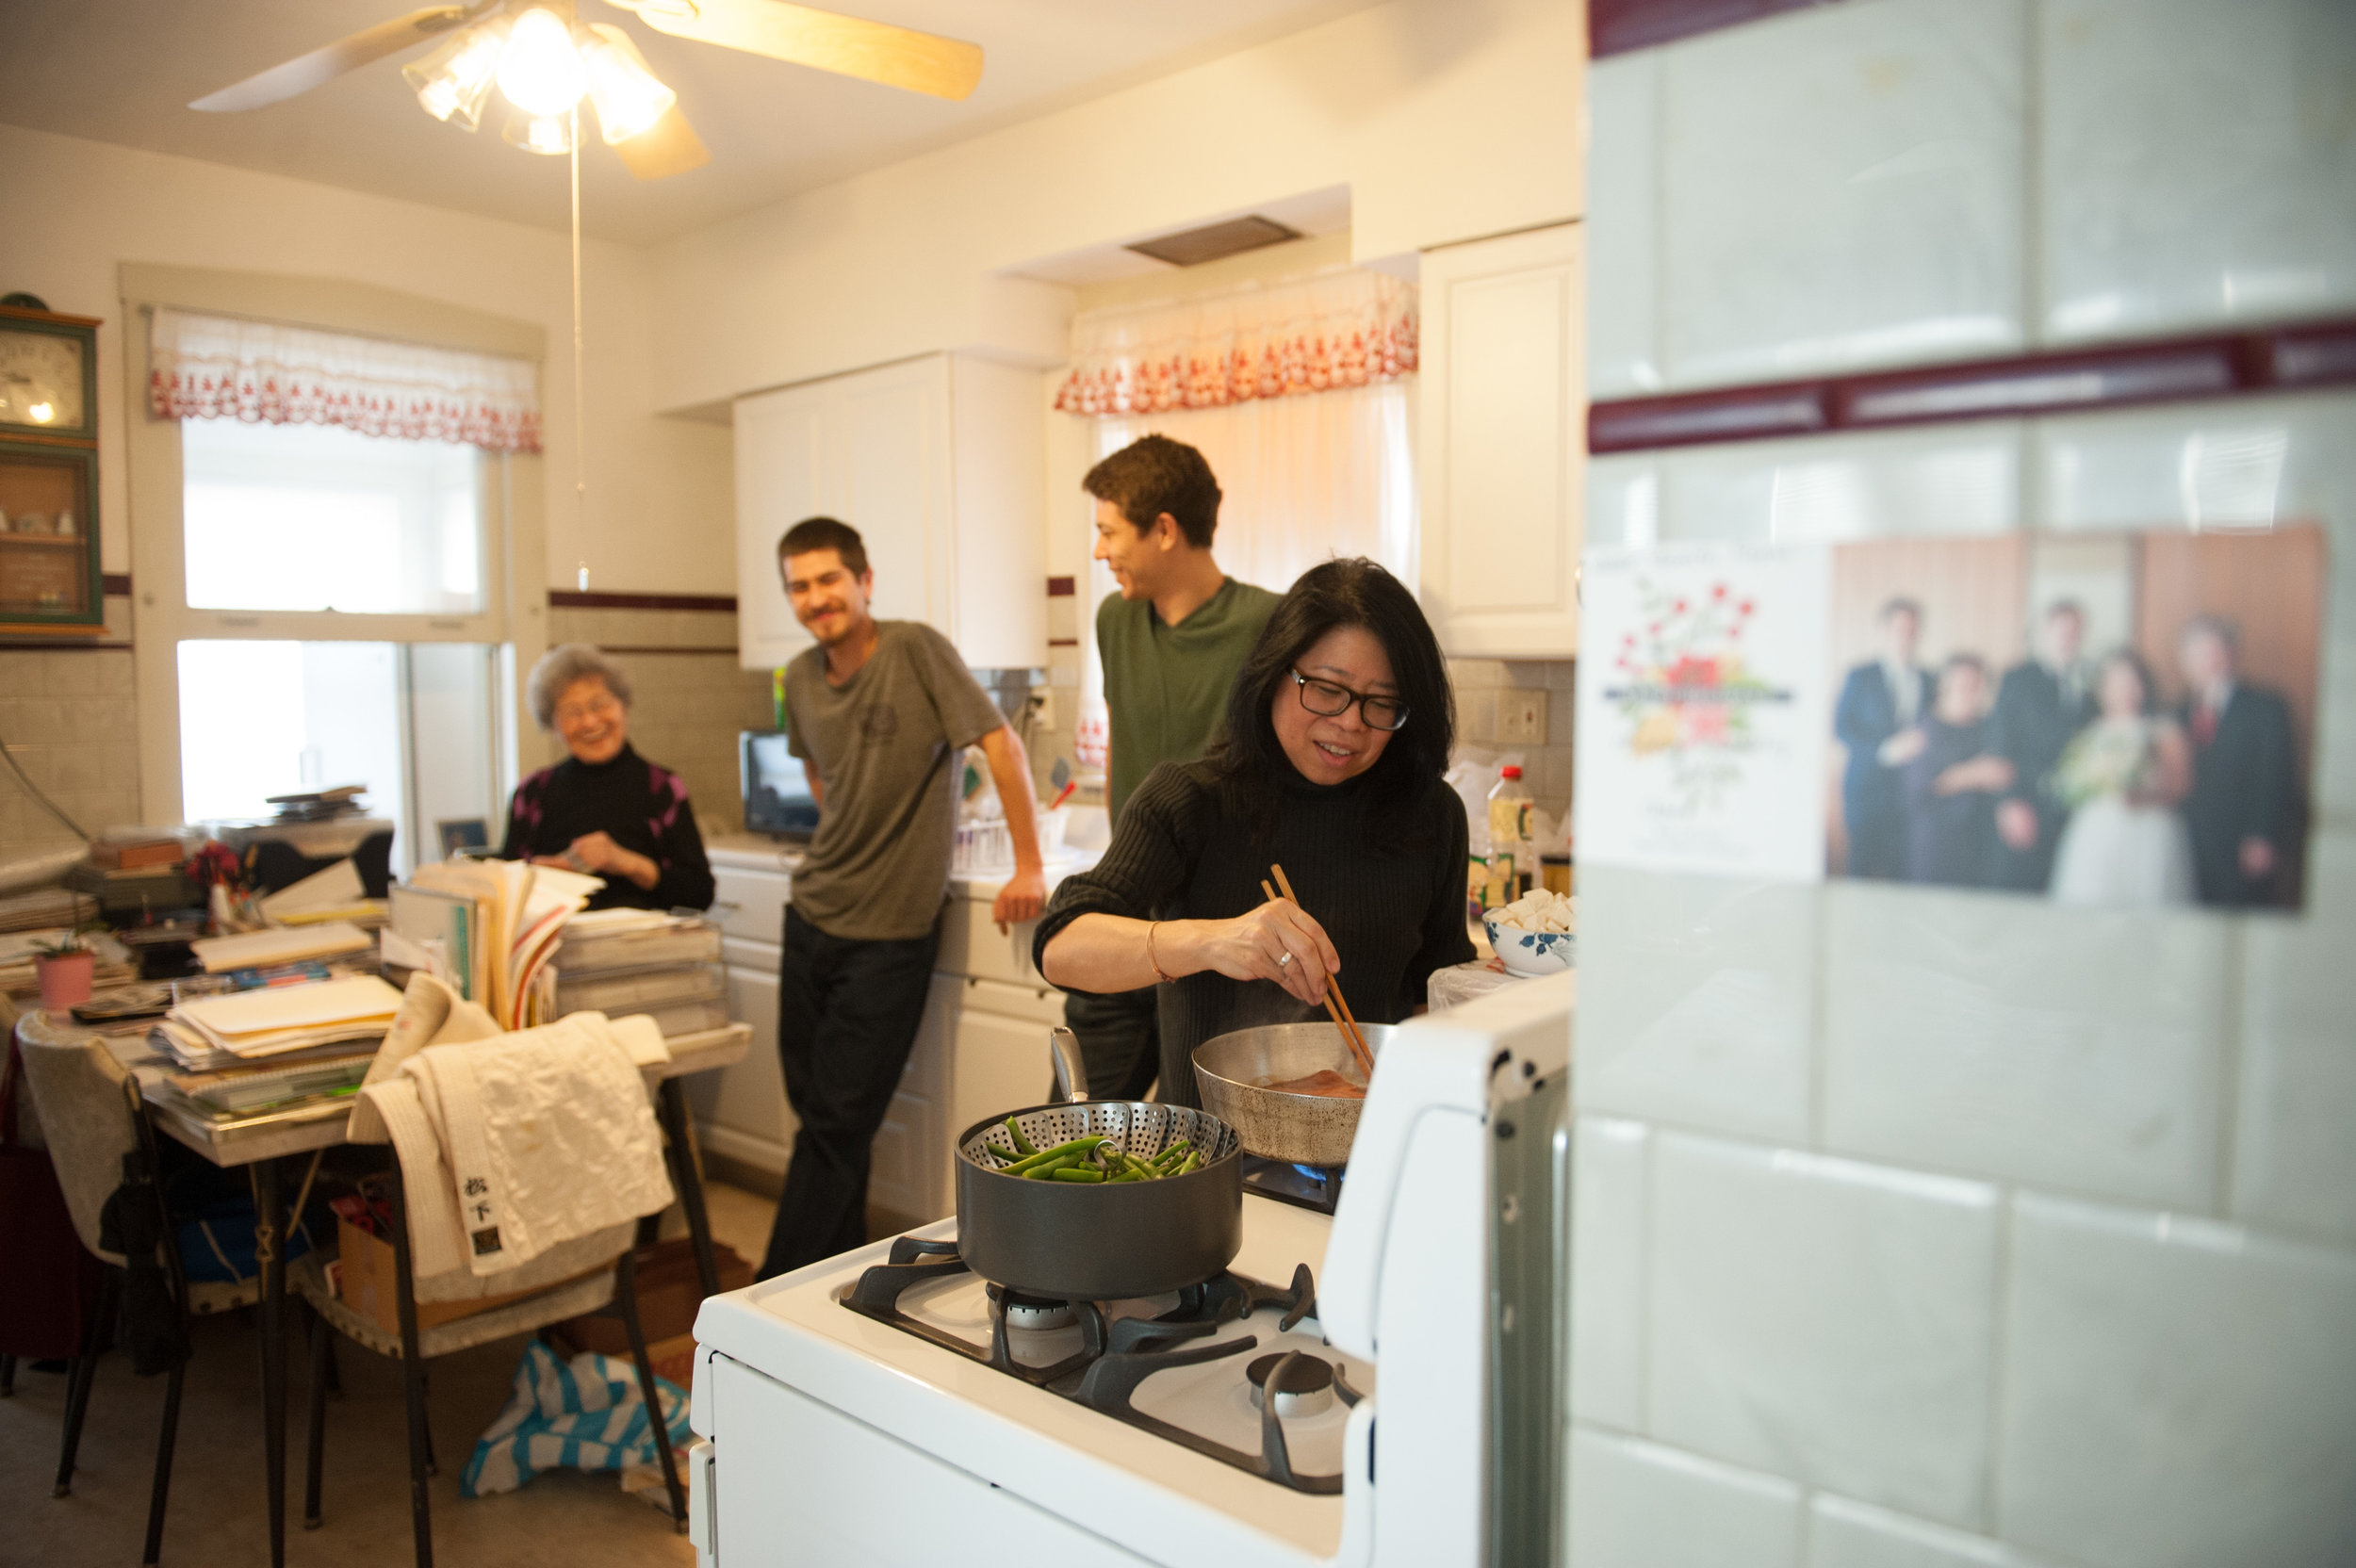 Elaine, Josh, Sam, and Fumiko cook a meal together in Fumiko's apartment.